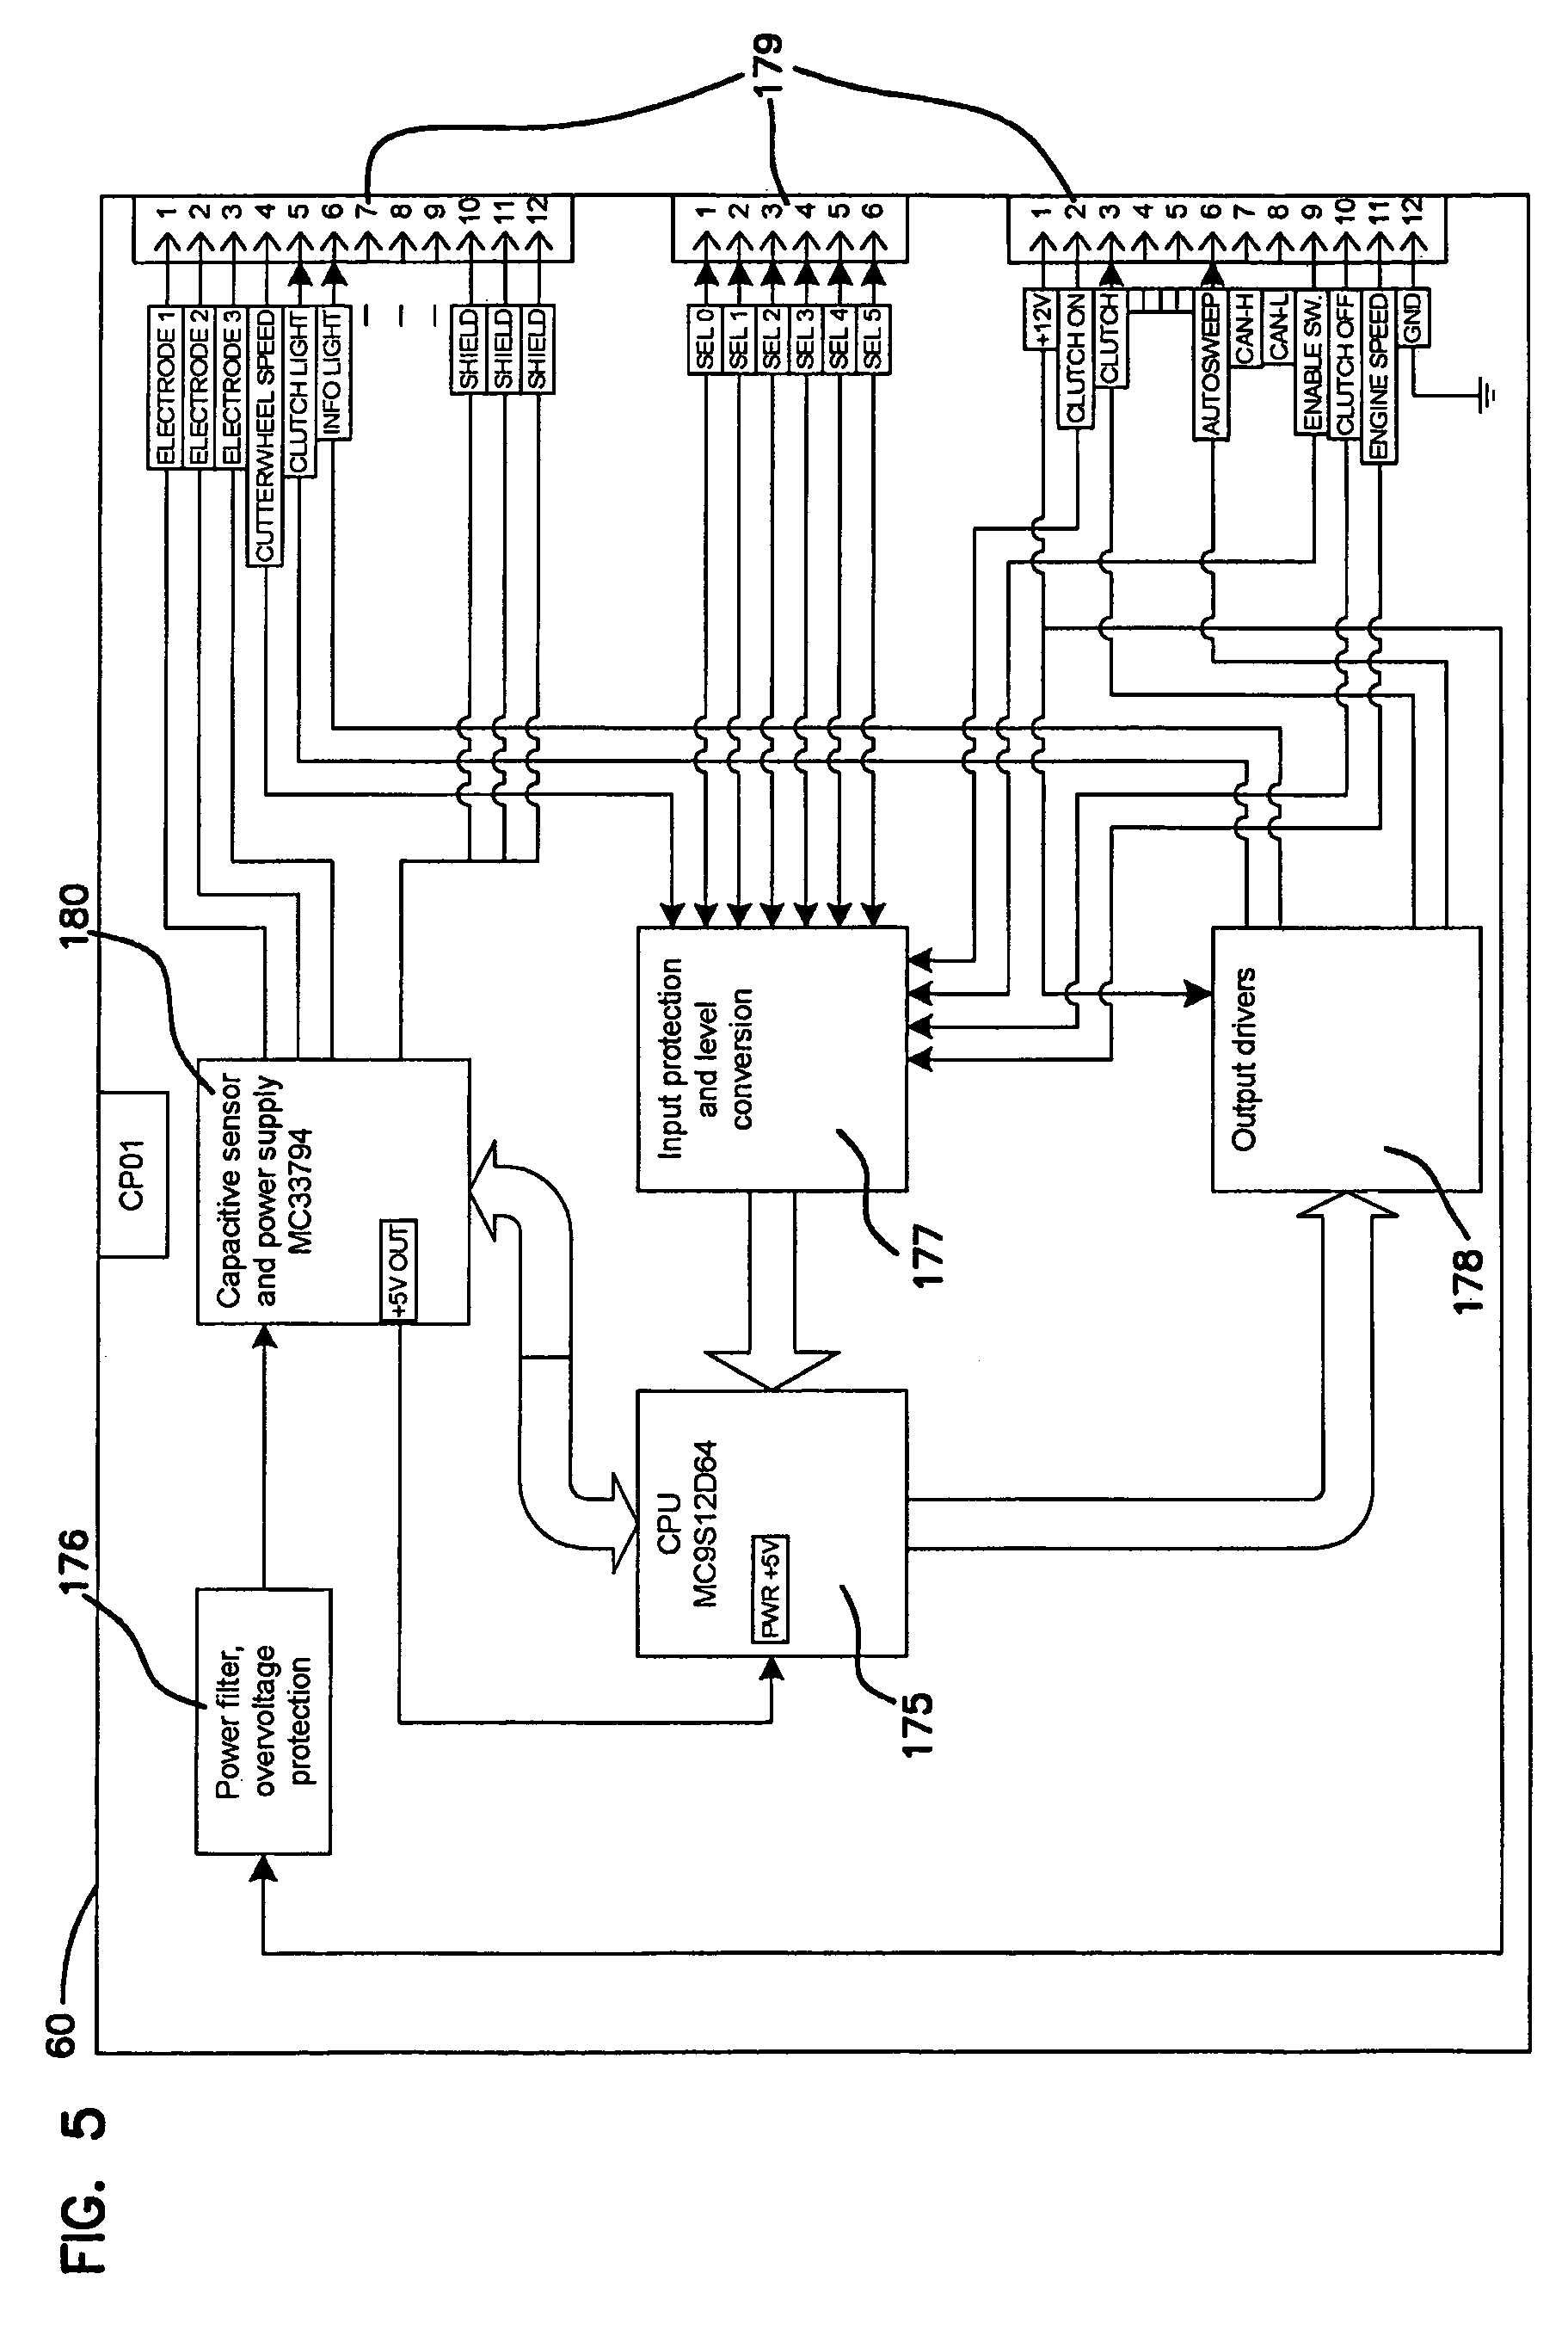 Patent US7999562 - Apparatus and method of capacitively ... on chevrolet wiring diagram, dodge wiring diagram, atlas wiring diagram, motor wiring diagram, liebherr wiring diagram, lincoln wiring diagram, case wiring diagram, simplicity wiring diagram, sullair wiring diagram, american wiring diagram, lull wiring diagram, astec wiring diagram, sakai wiring diagram, international wiring diagram, taylor wiring diagram, demag wiring diagram, ingersoll rand wiring diagram, perkins wiring diagram, clark wiring diagram, samsung wiring diagram,